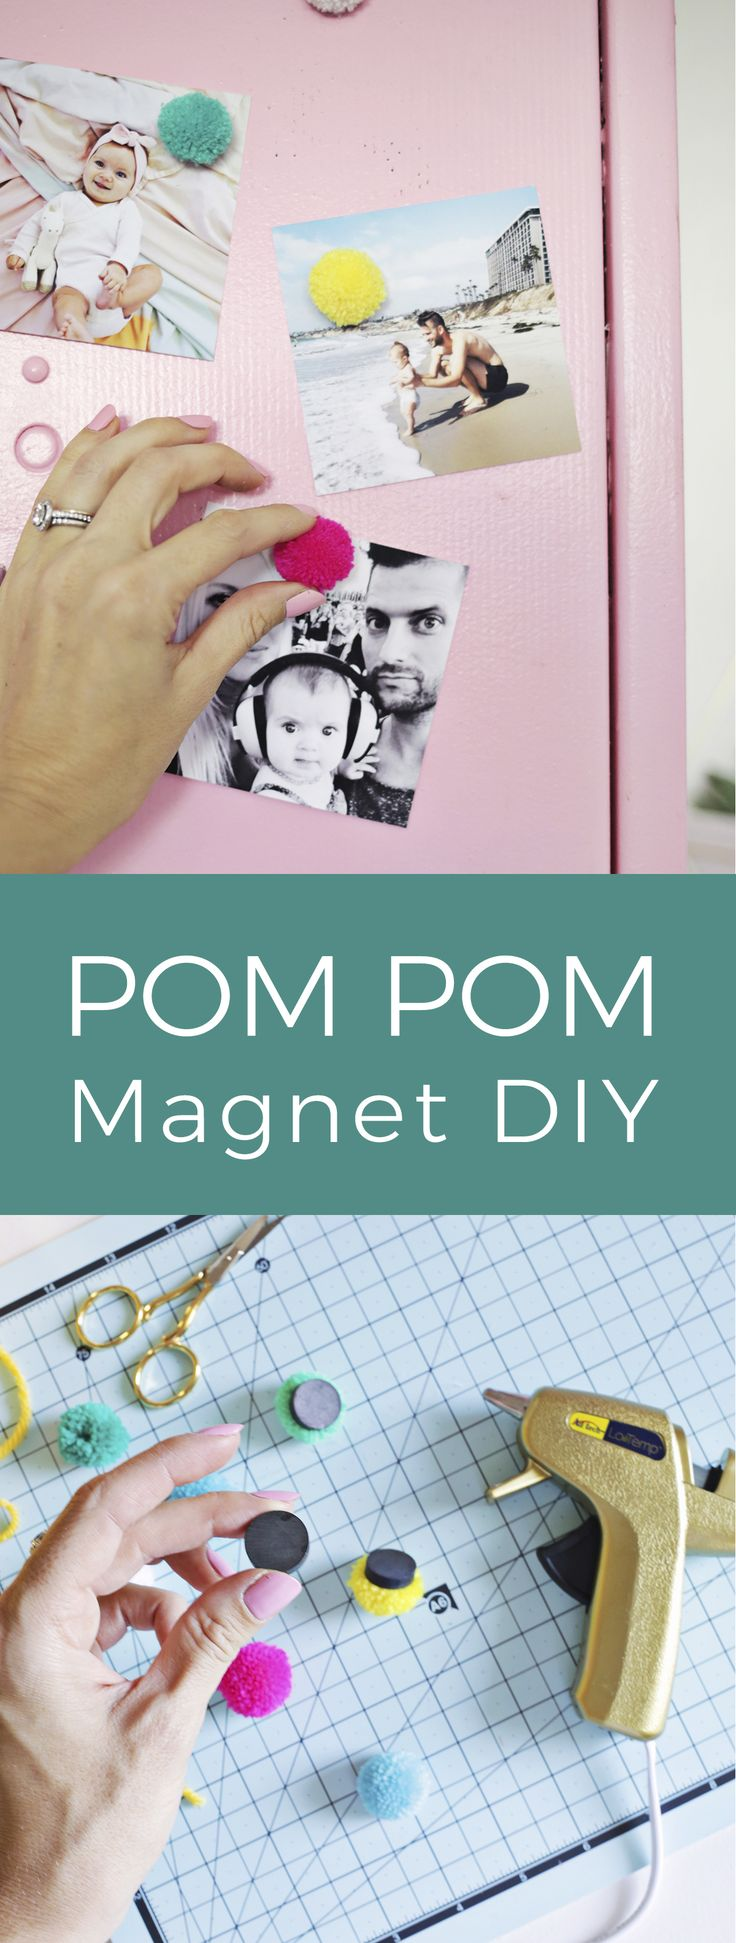 Easy pom pom magnet DIY! Working with @CanonUSA #CraftywithCanon #sponsored